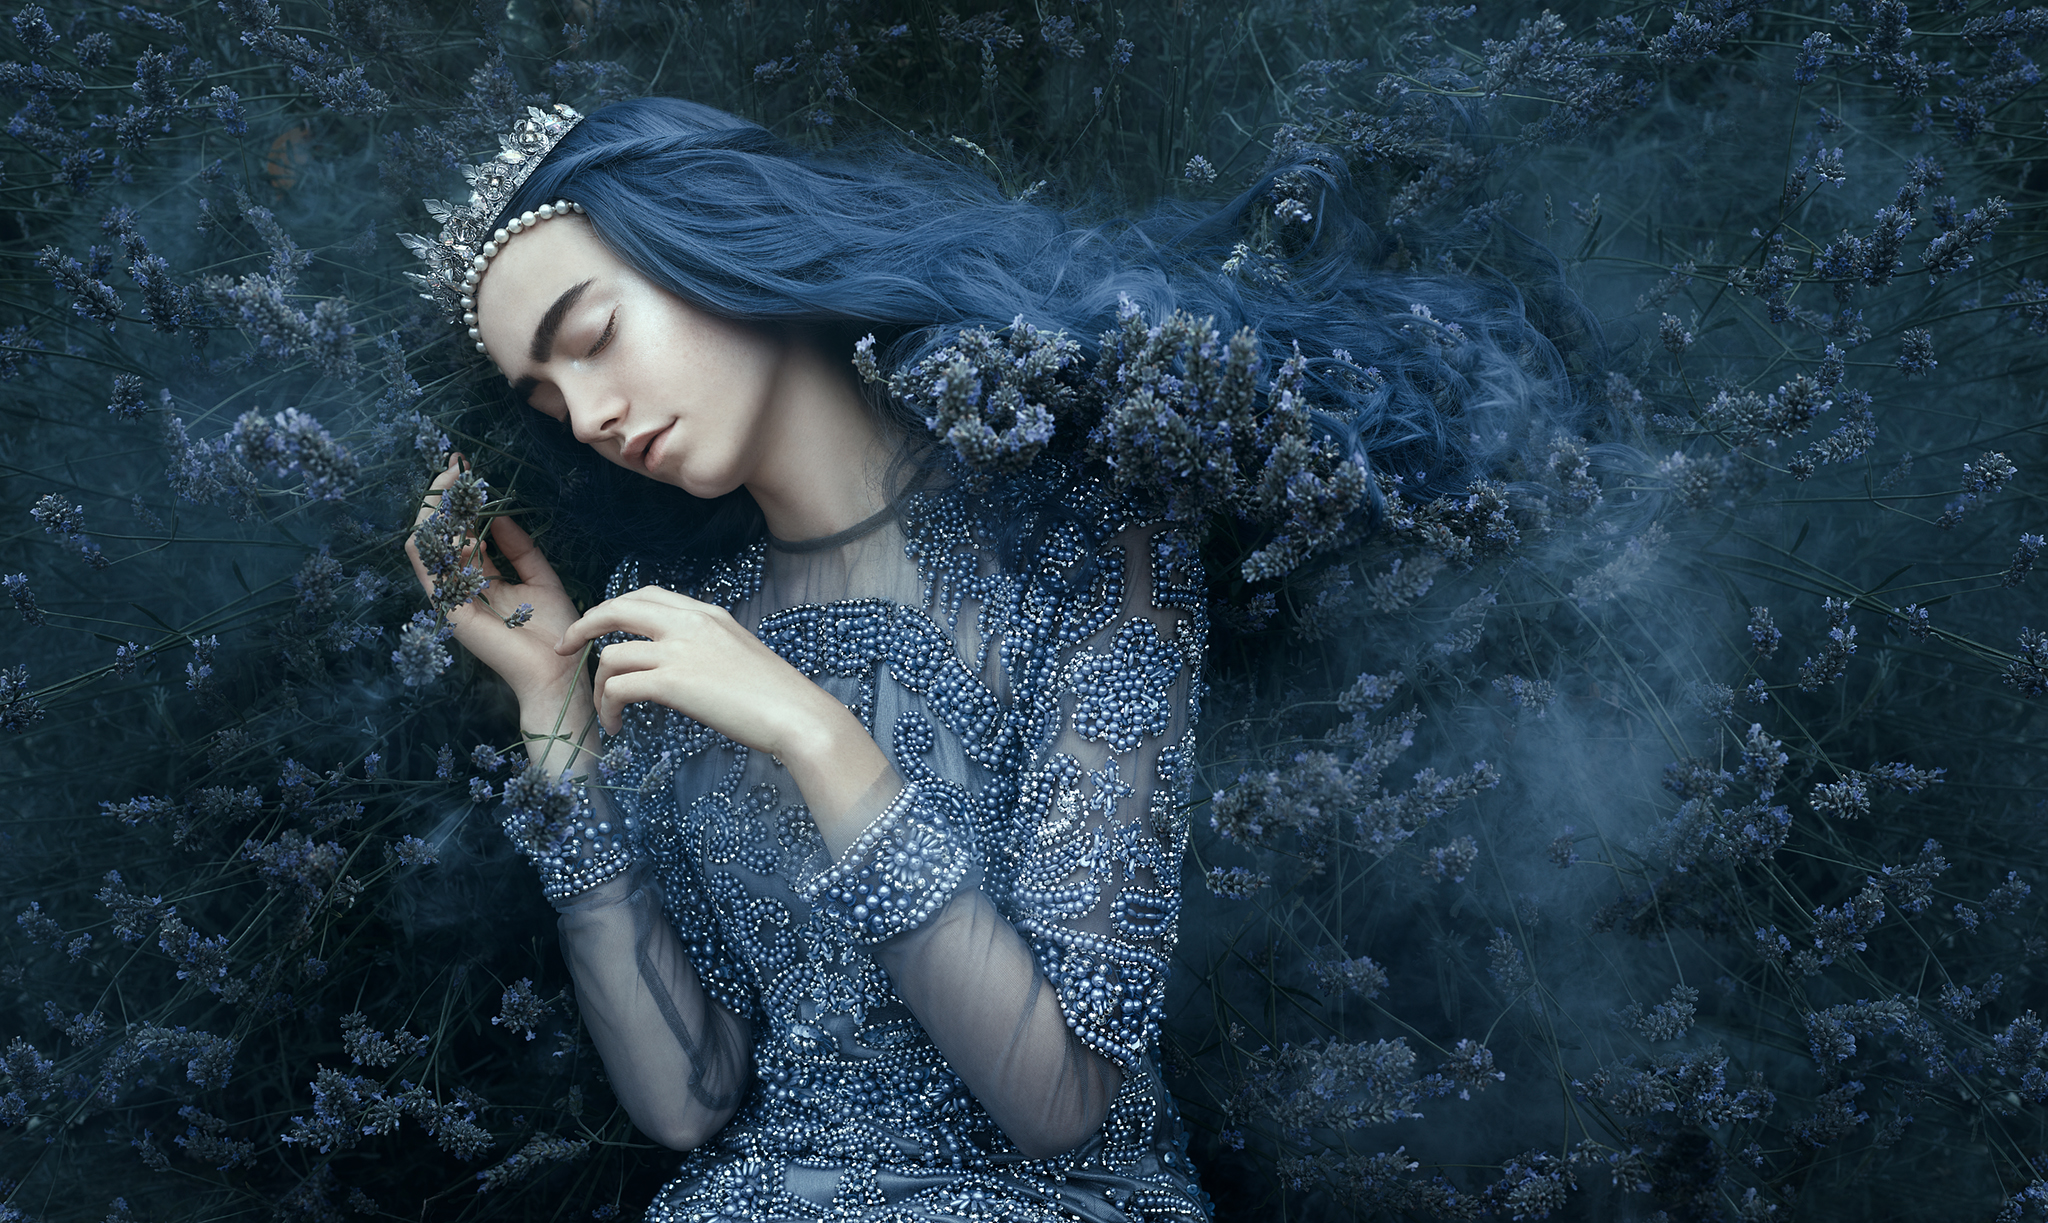 Lavender's Song   -   Bella Kotak.  Limited edition 70 x 100cm print - 1 of 25. £90 - print only. To order contact:  info@elementstudios.co.uk .